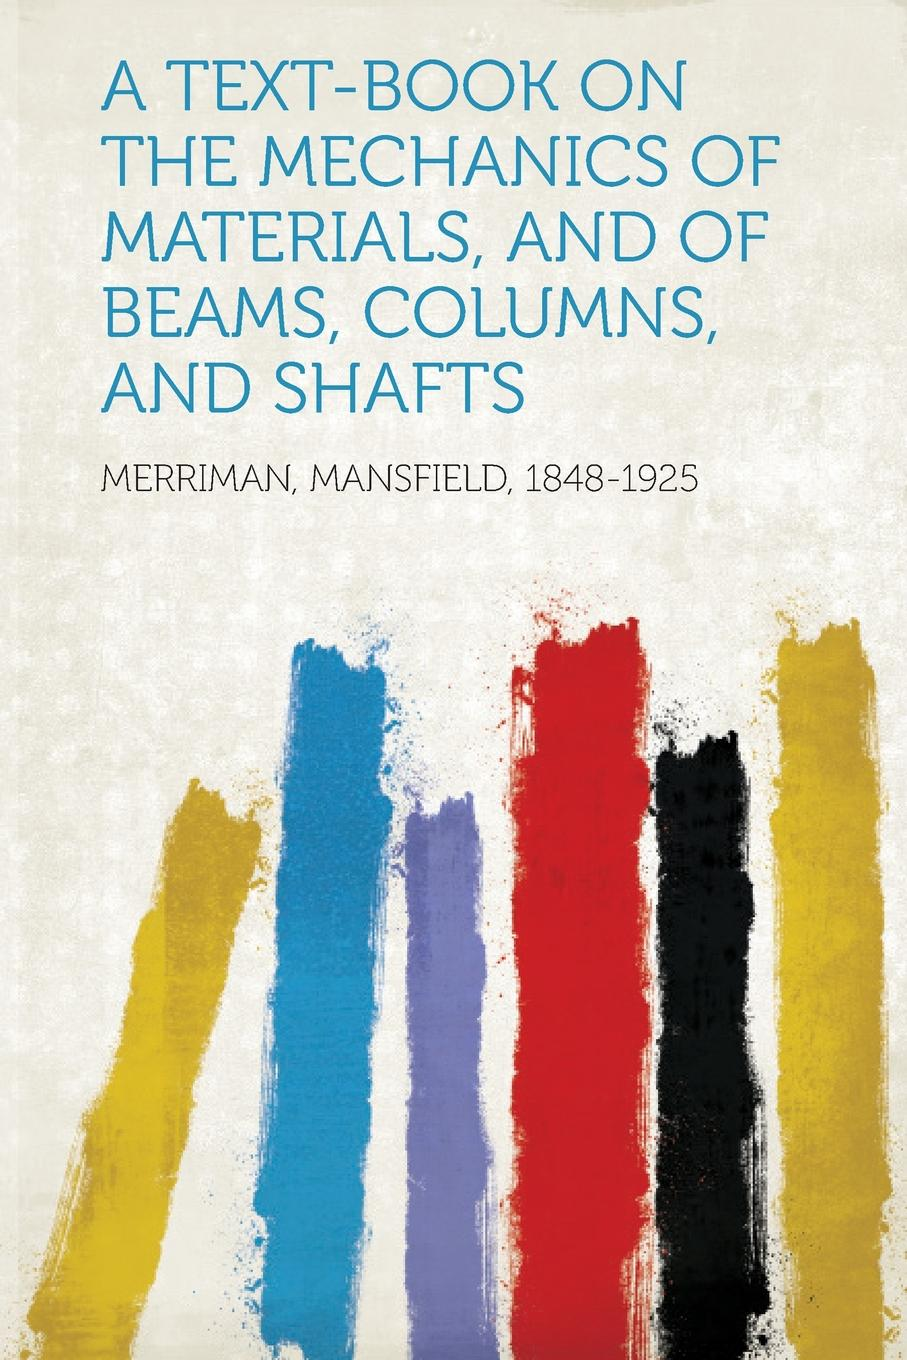 Mansfield Merriman A Text-Book on the Mechanics of Materials, and of Beams, Columns, and Shafts muthuraman s mechanics of materials